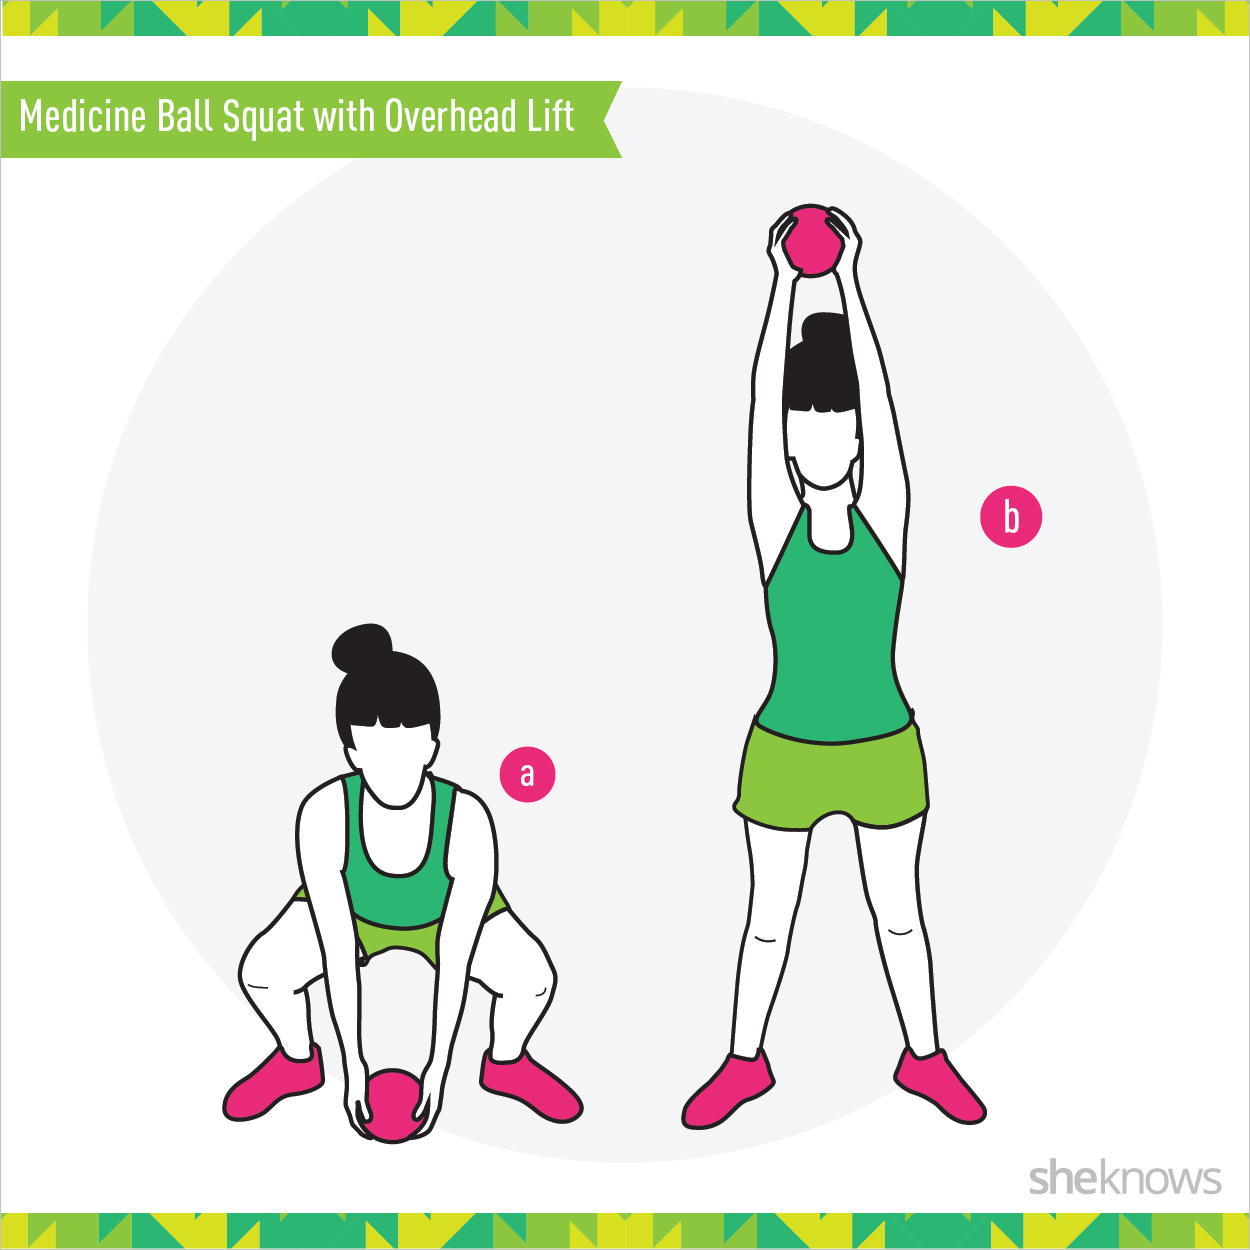 hight resolution of 1 medicine ball squat with overhead lift